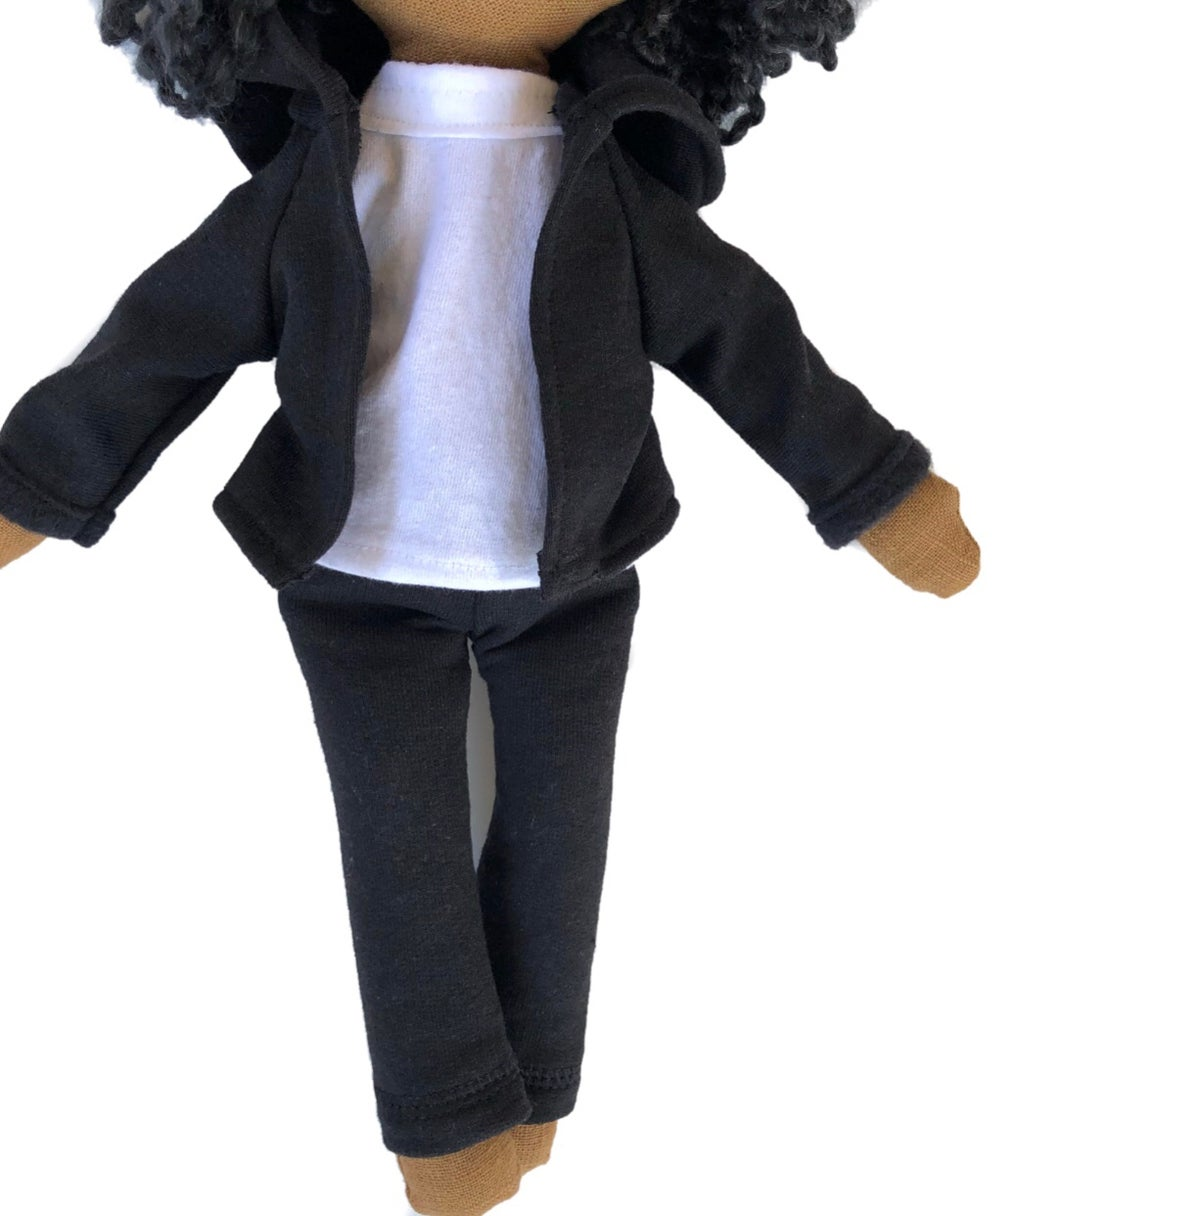 3pc sweatsuit - Doll Accessory